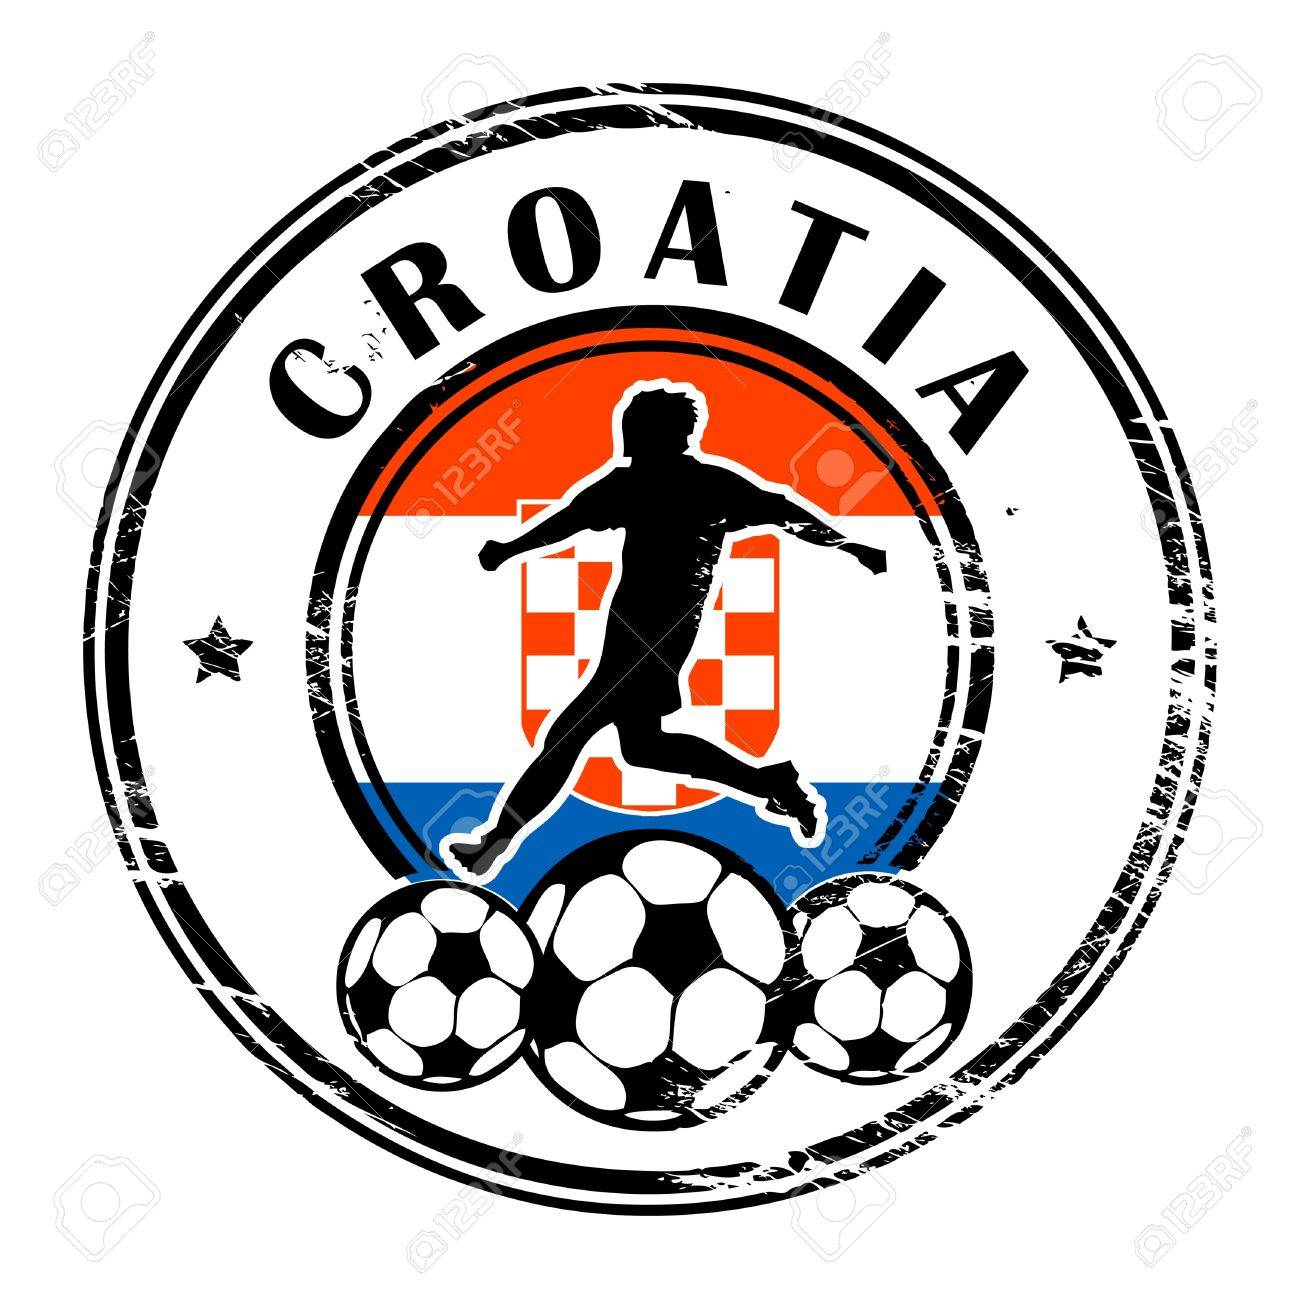 Grunge stamp with football and name Croatia Stock Vector - 13822017